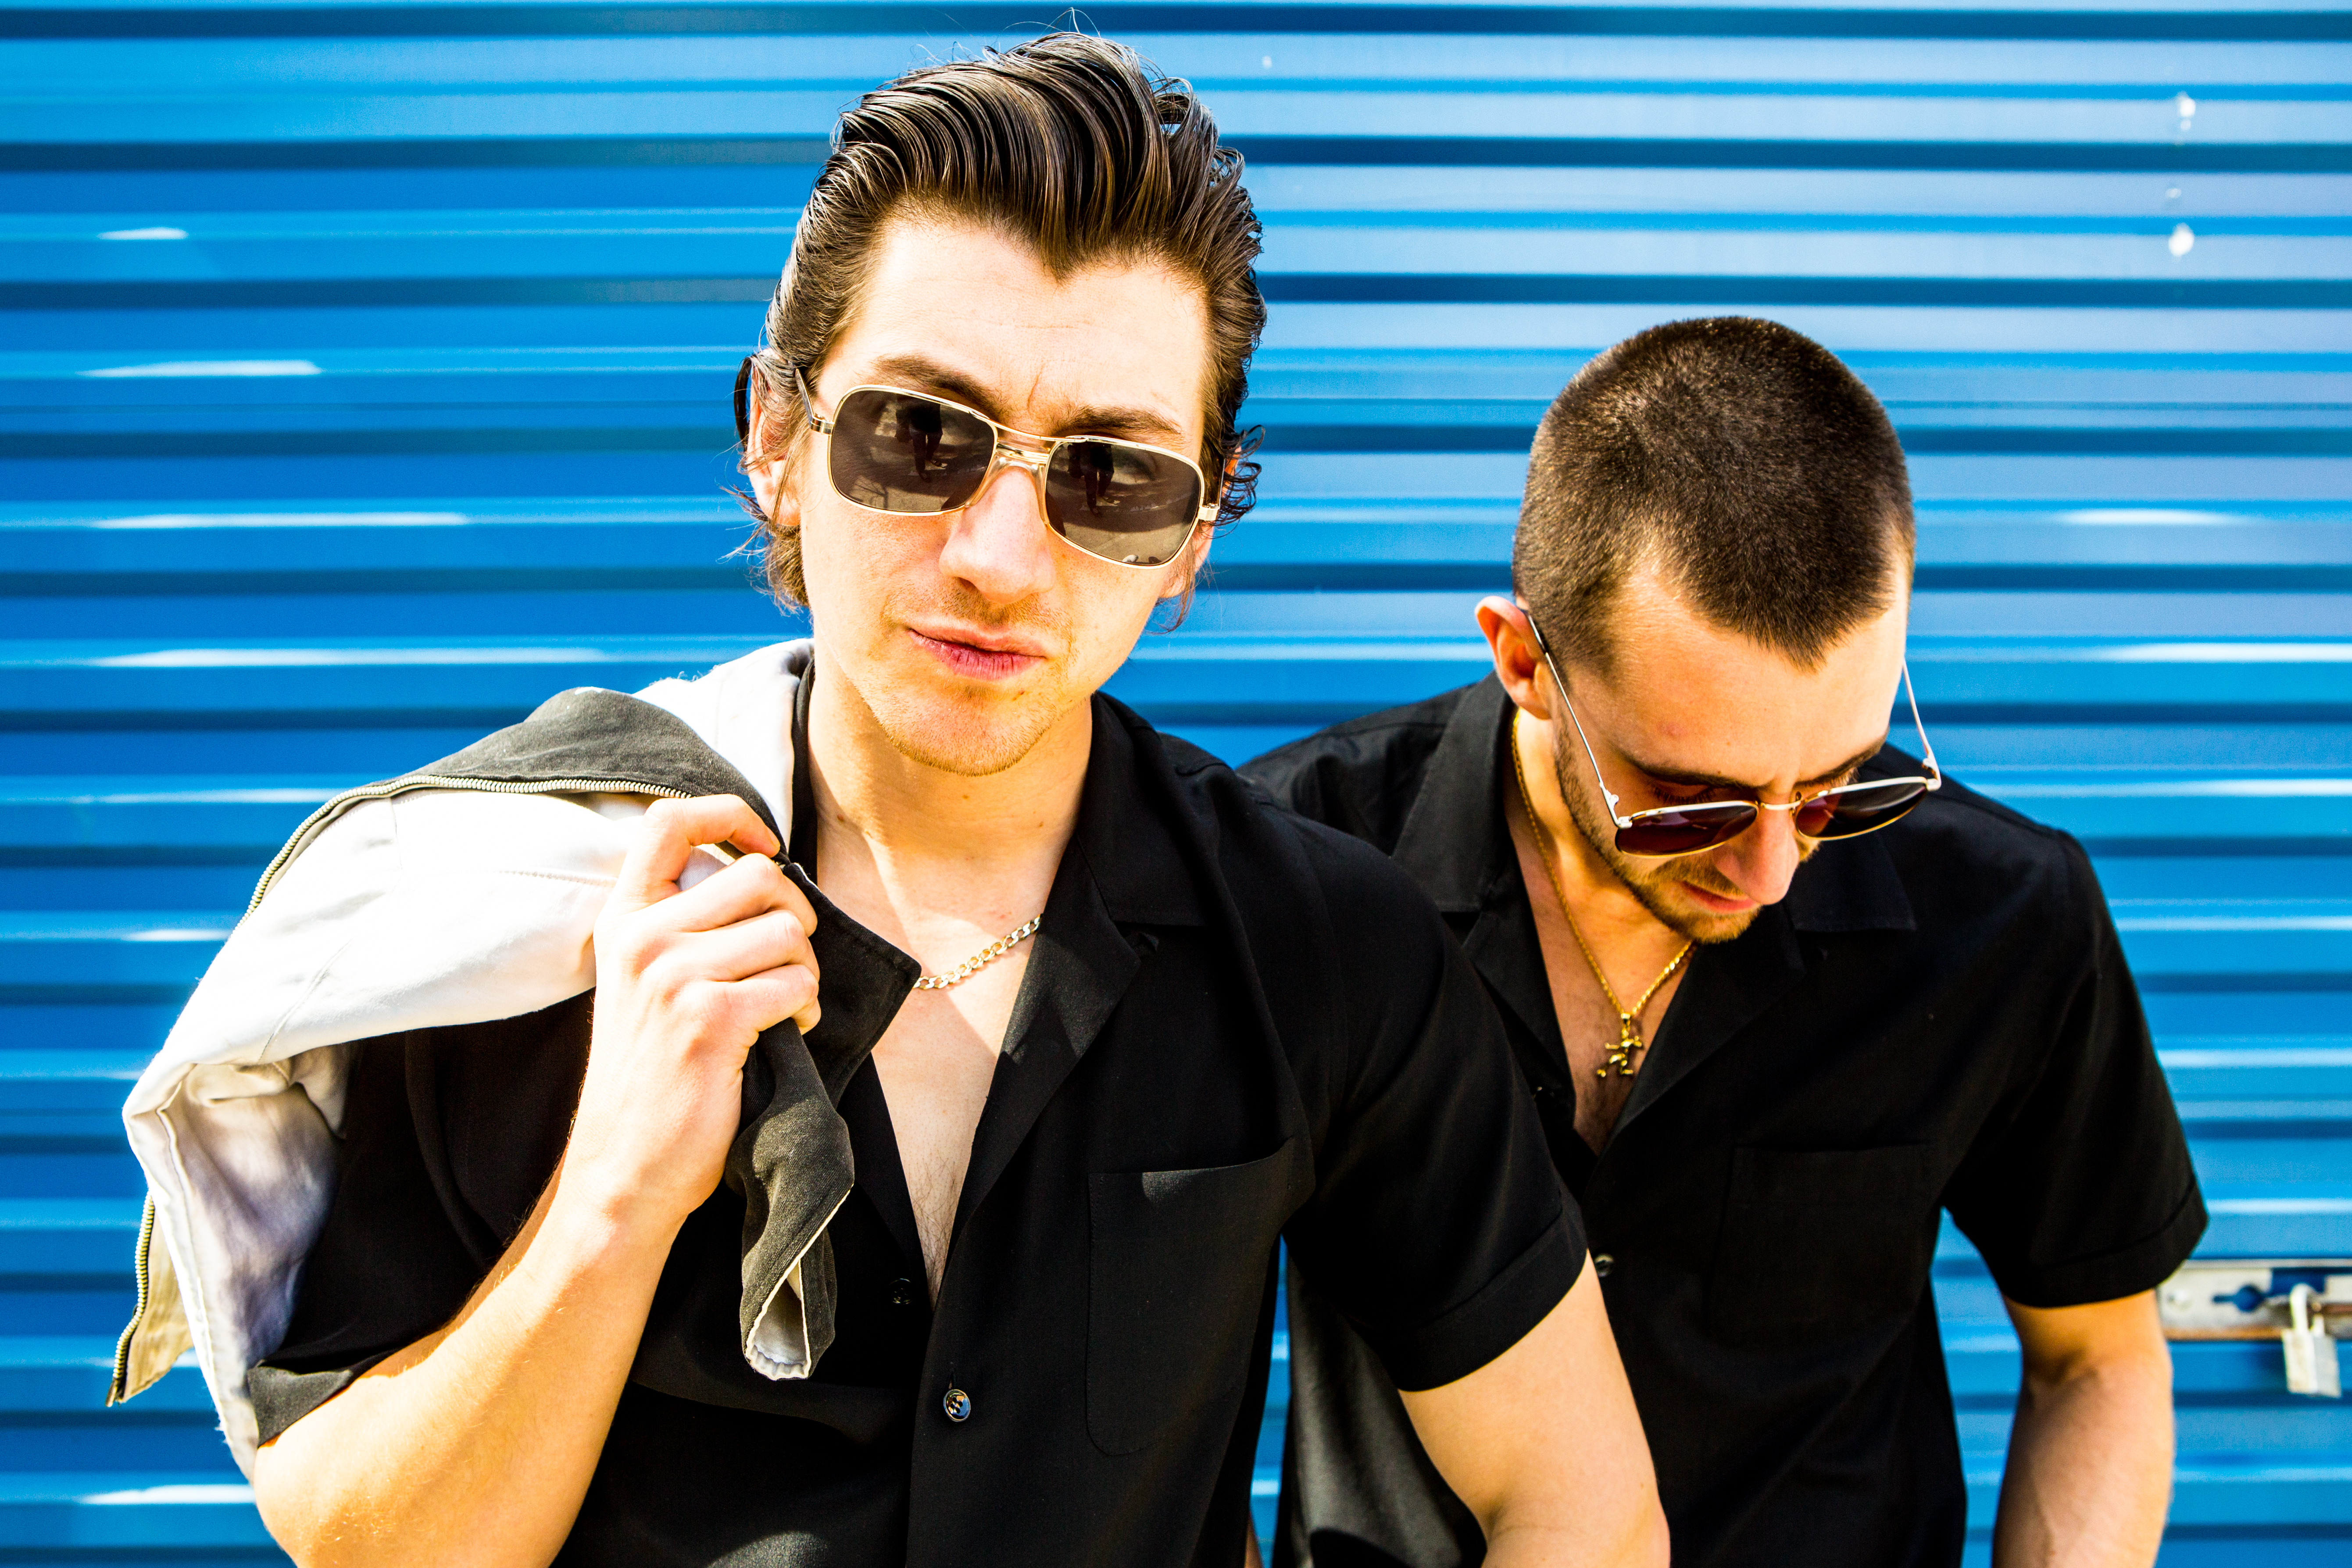 IL PICCOLO RUBRICA DISCHI 27.05.16: THE LAST SHADOW PUPPETS «Everything You've Come to Expect»